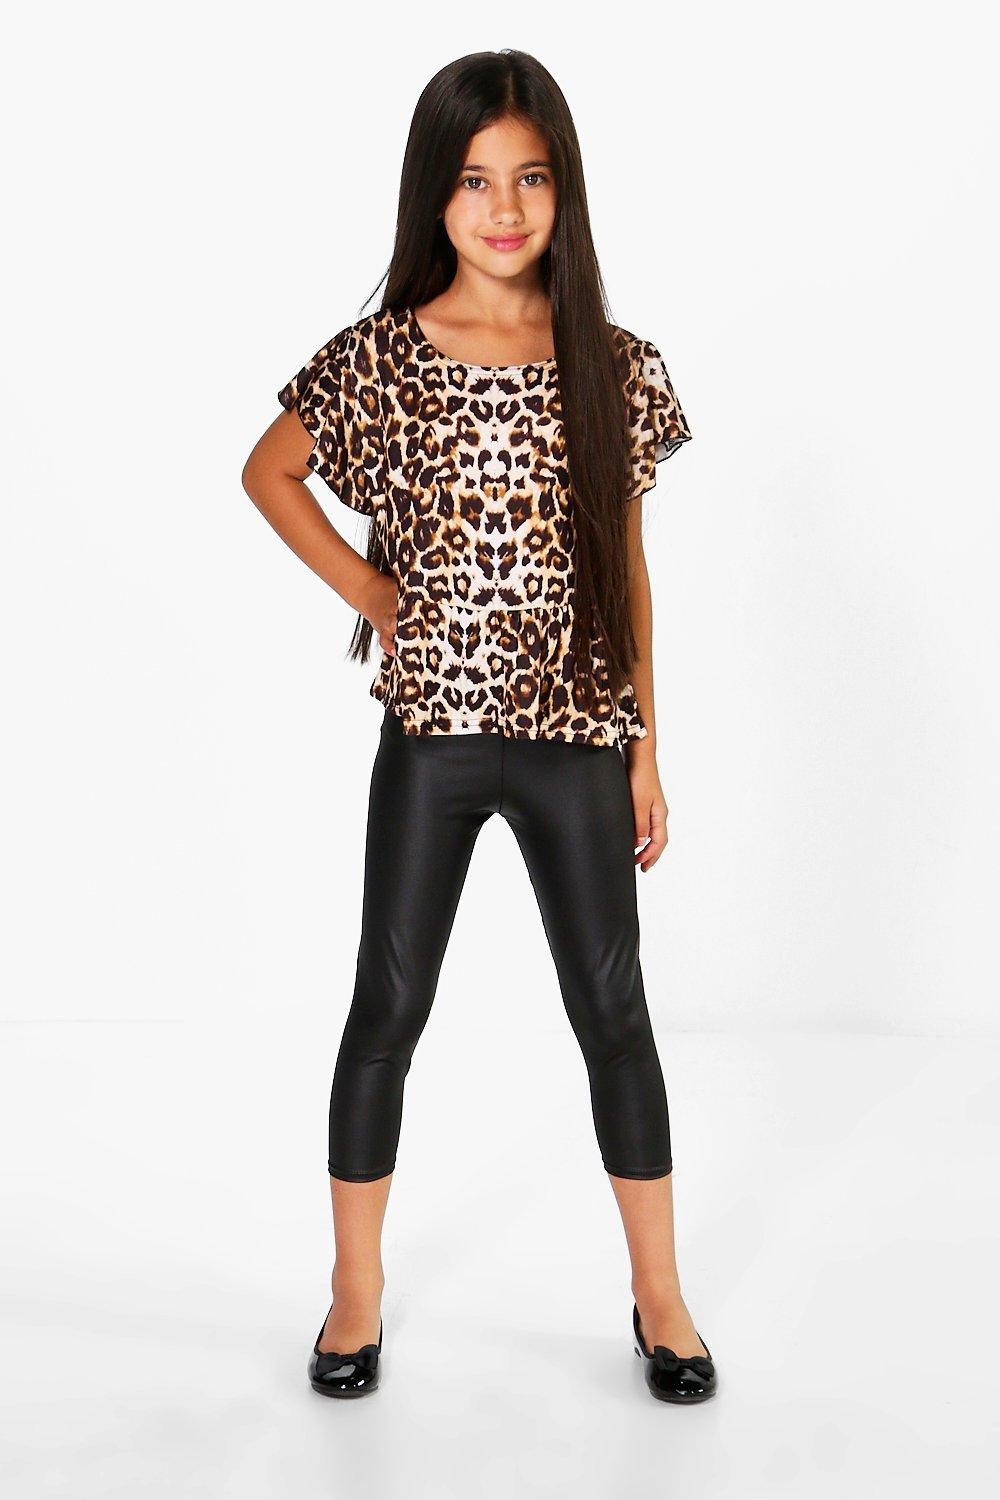 Girls High Shine Leggings